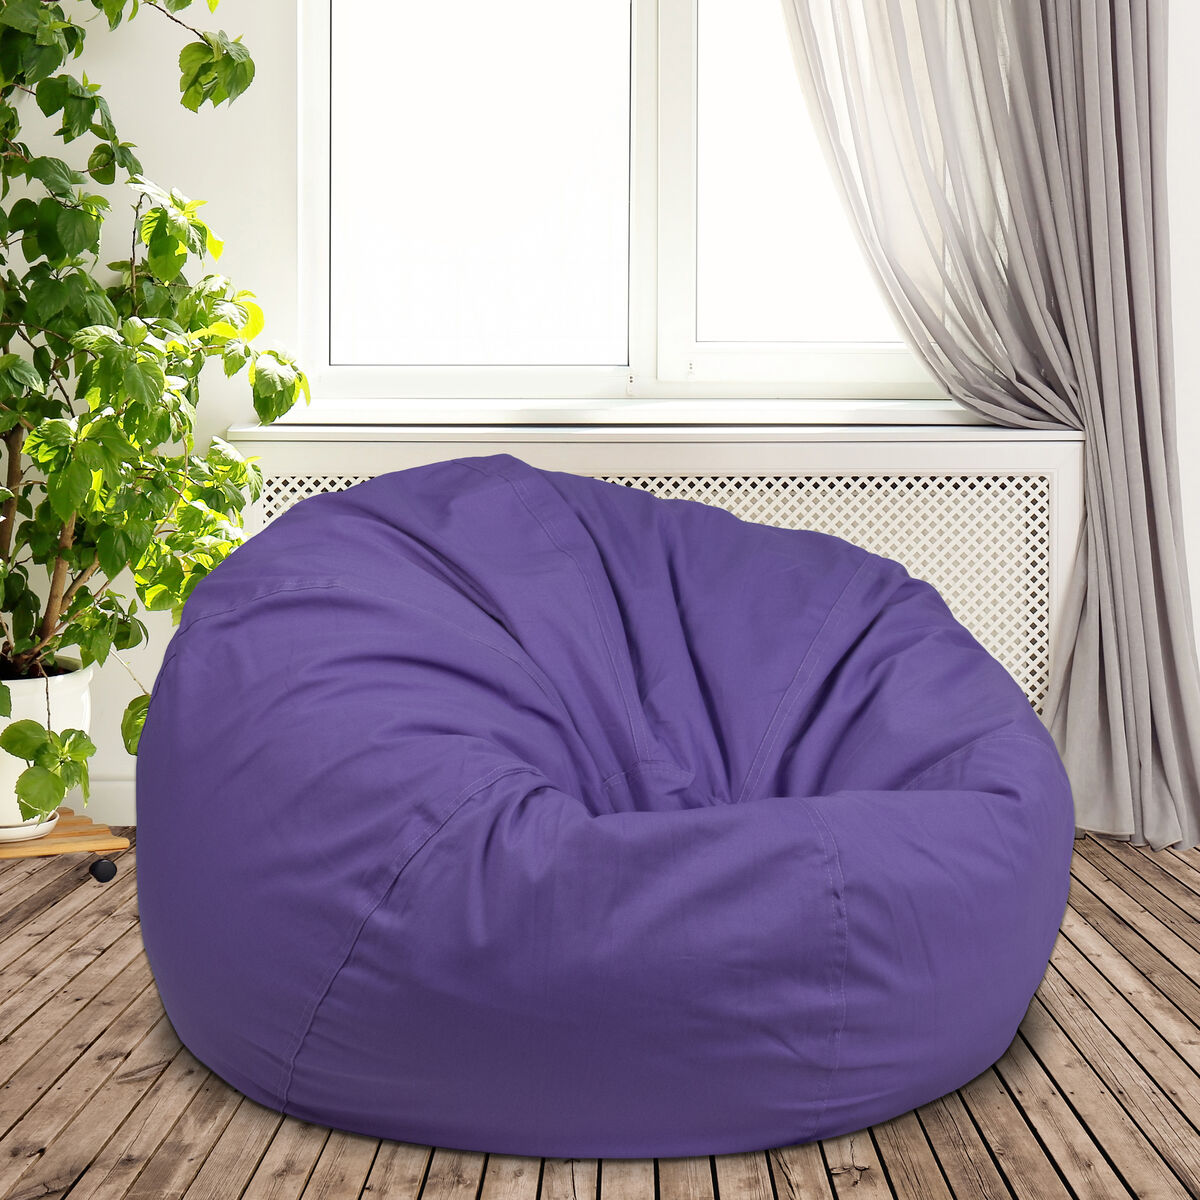 Outstanding Oversized Solid Purple Bean Bag Chair For Kids And Adults Ocoug Best Dining Table And Chair Ideas Images Ocougorg